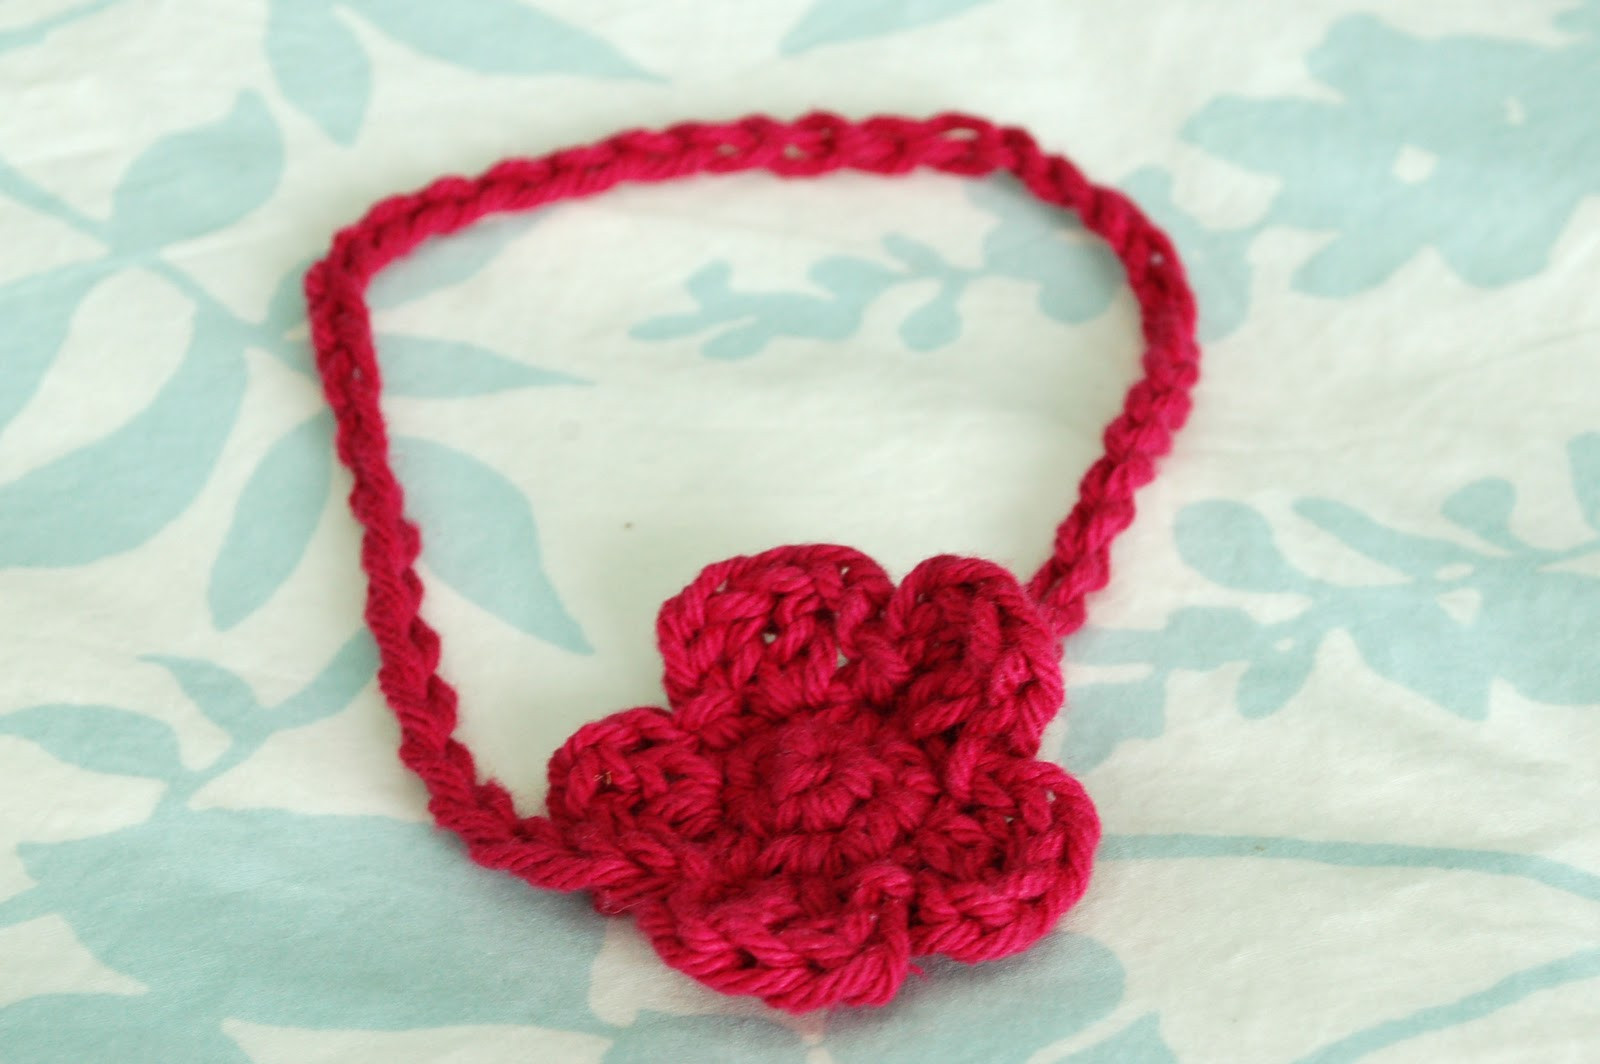 Crochet Headbands for Baby Awesome Alli Crafts Free Pattern Baby Headband Of Innovative 46 Pics Crochet Headbands for Baby